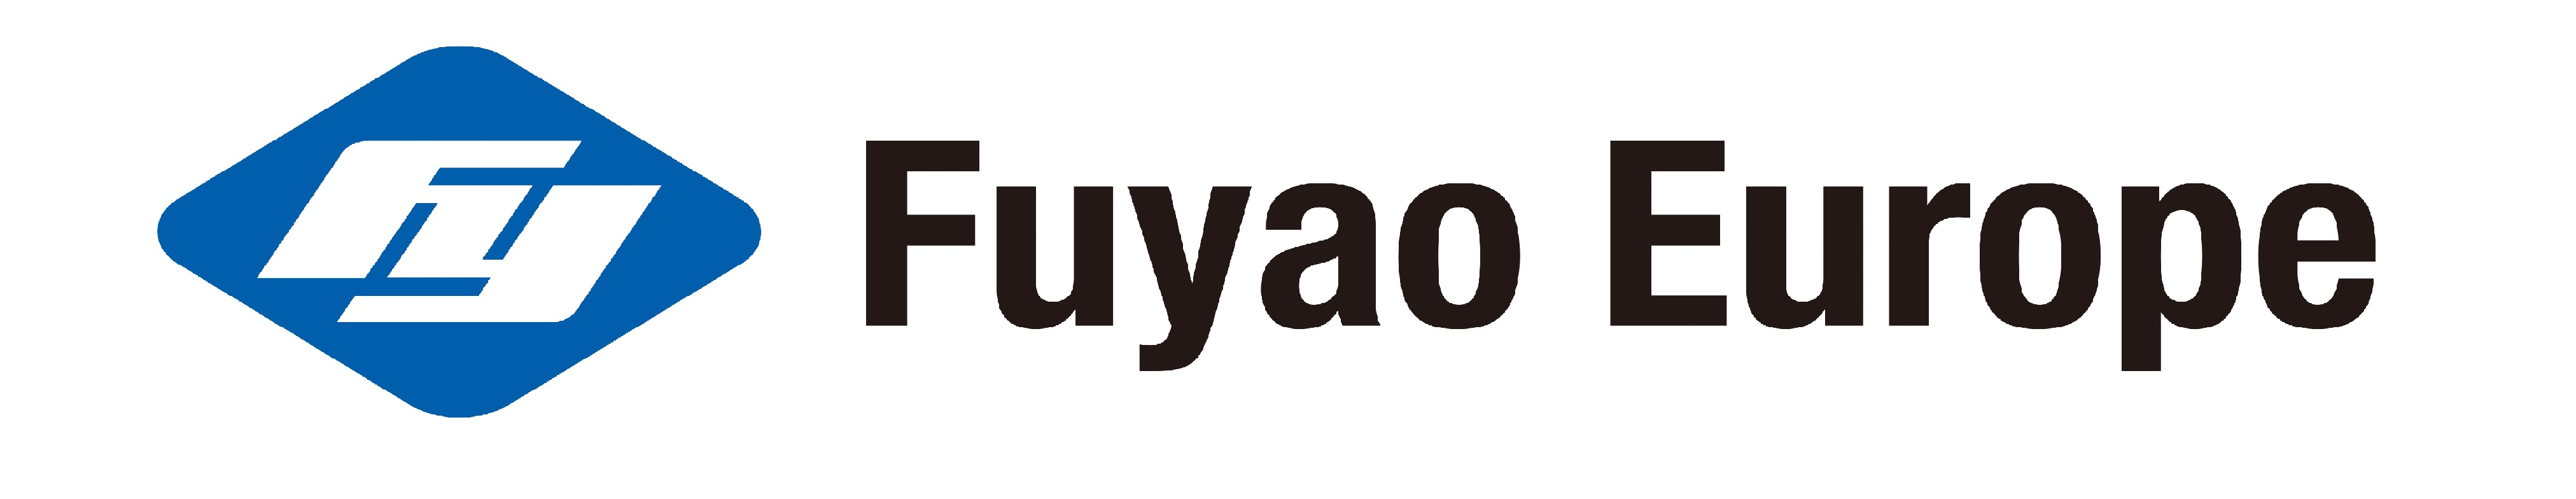 Fuyao Europe GmbH